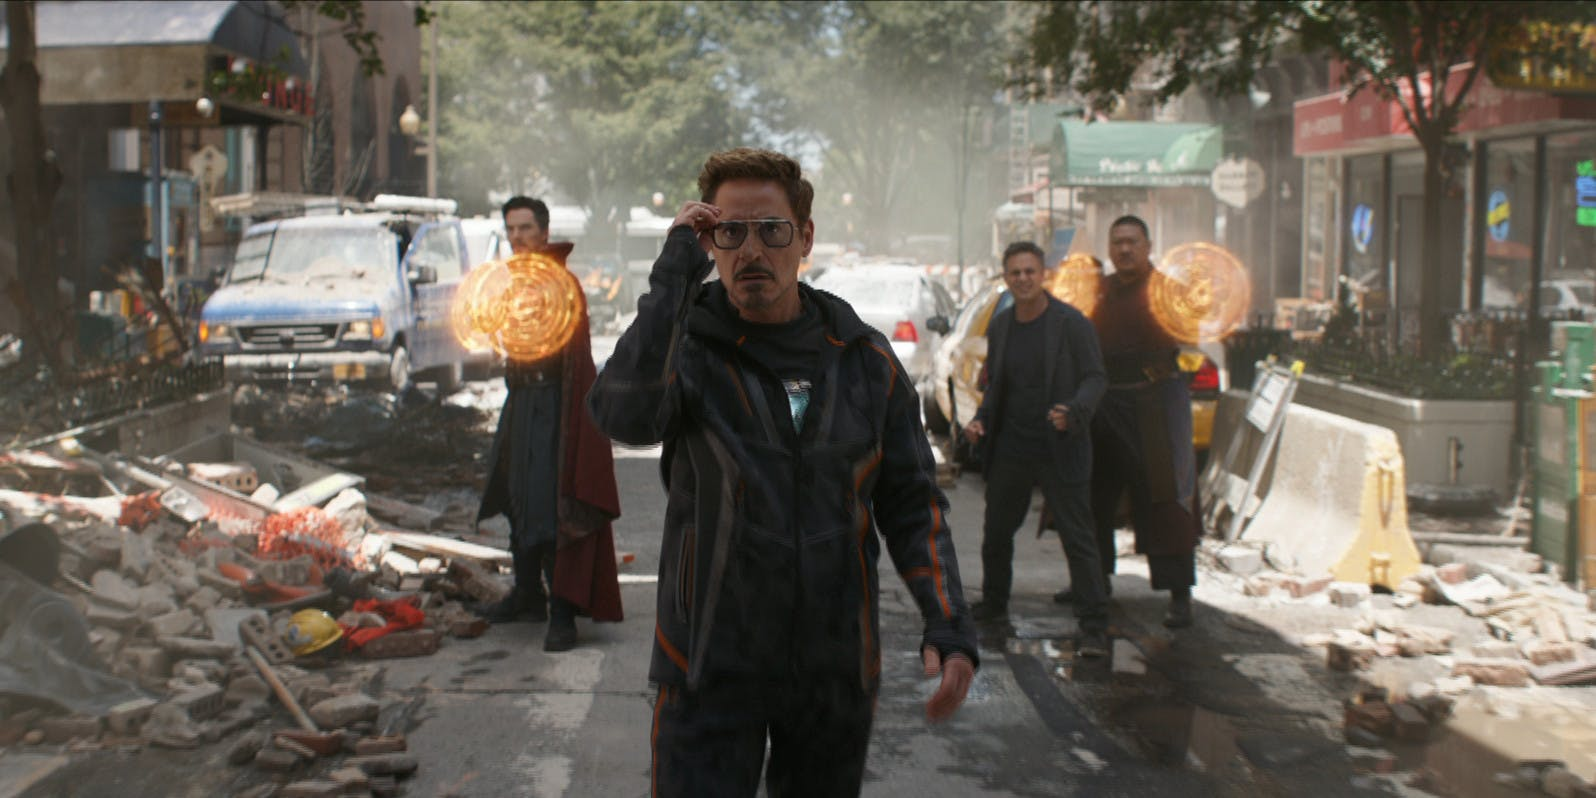 Benedict Cumberbatch as Doctor Strange, Tony Stark as Robert Downey Jr., Mark Ruffalo as Bruce Banner and Benedict Wong as Wong in 'Avengers:Infinity War'